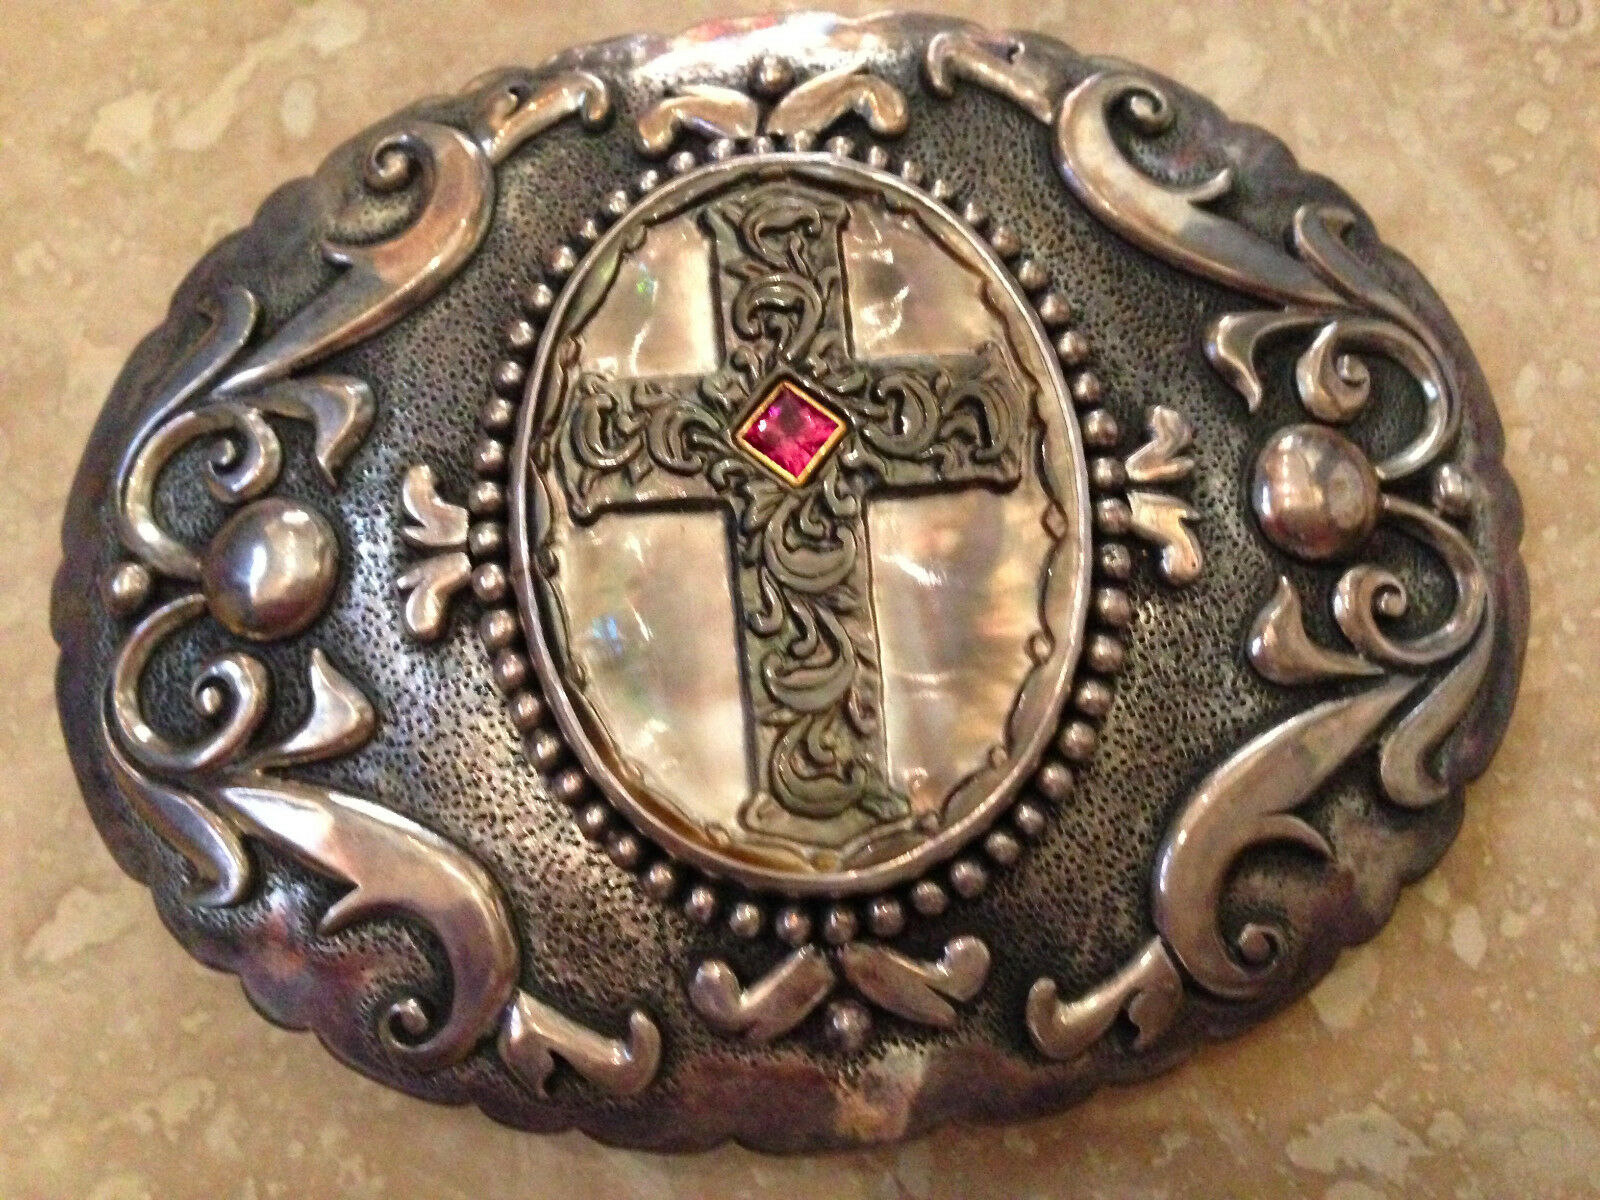 UNISEX 1 OF A KIND STERLING BELT BUCKLE HANDCARVED CROSS BLACK MOP